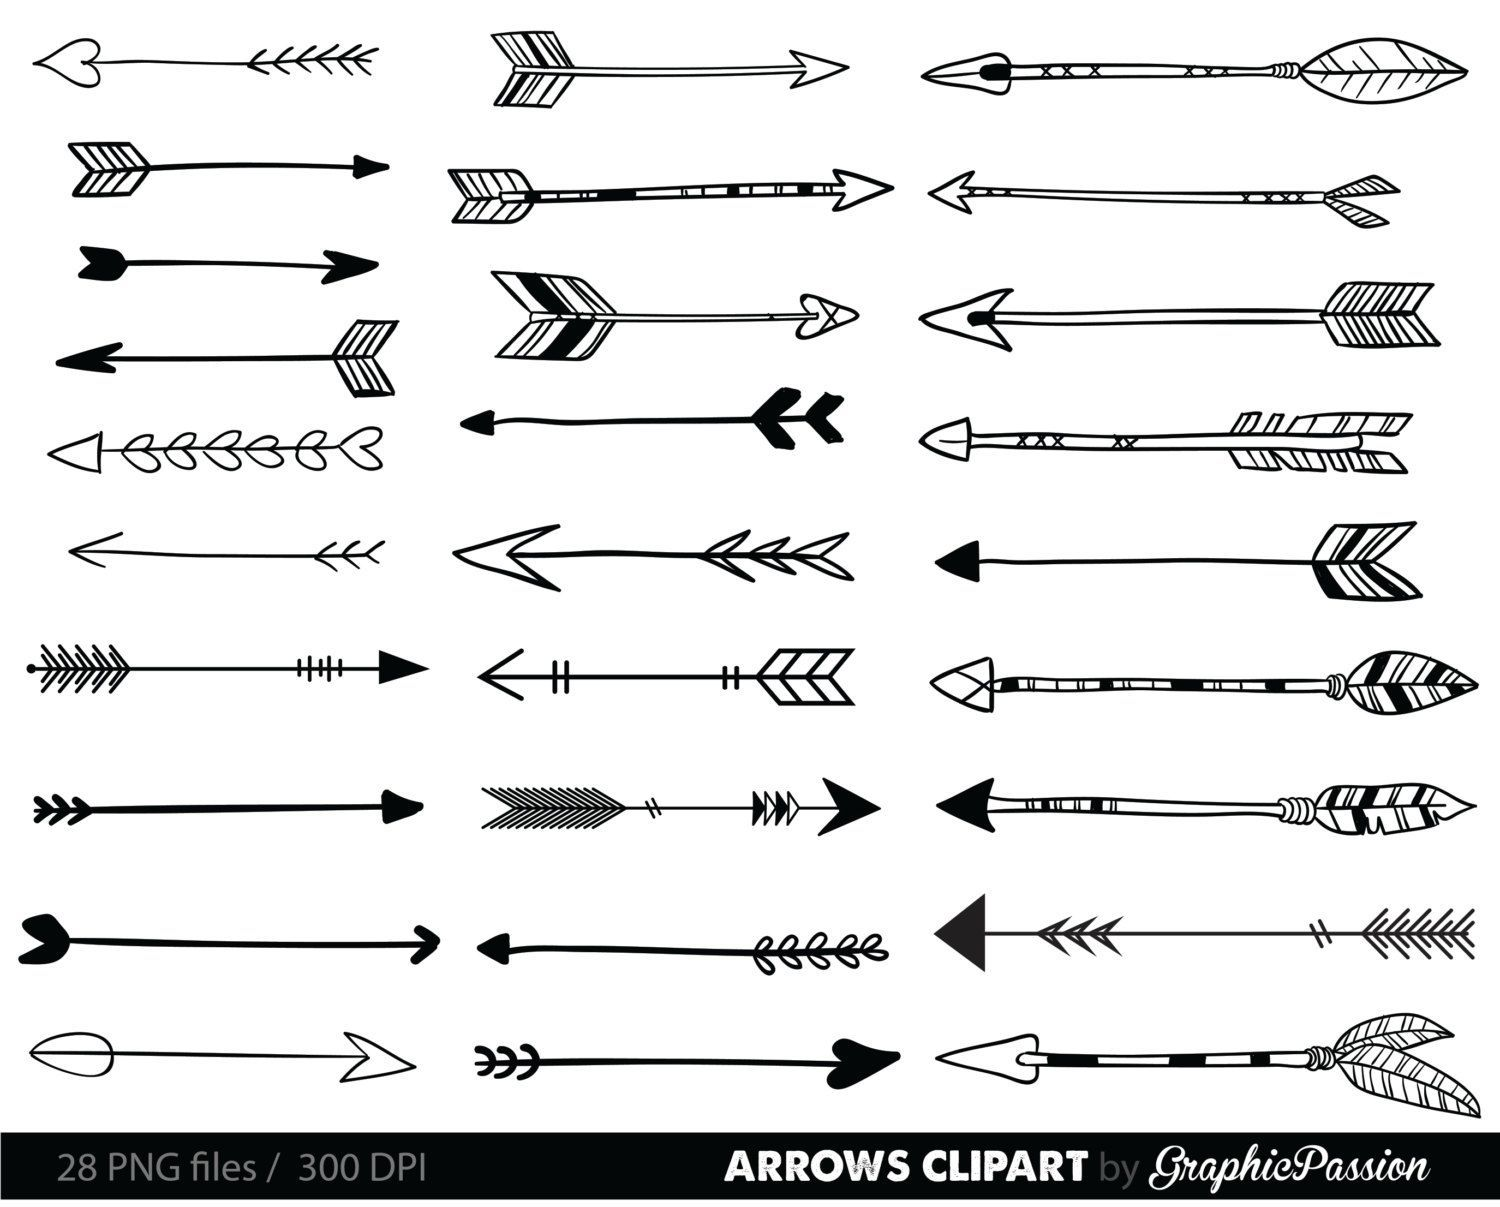 Image Result For Fun Arrows Clipart Black And White Arrow Drawing Hand Drawn Arrows Arrow Clipart